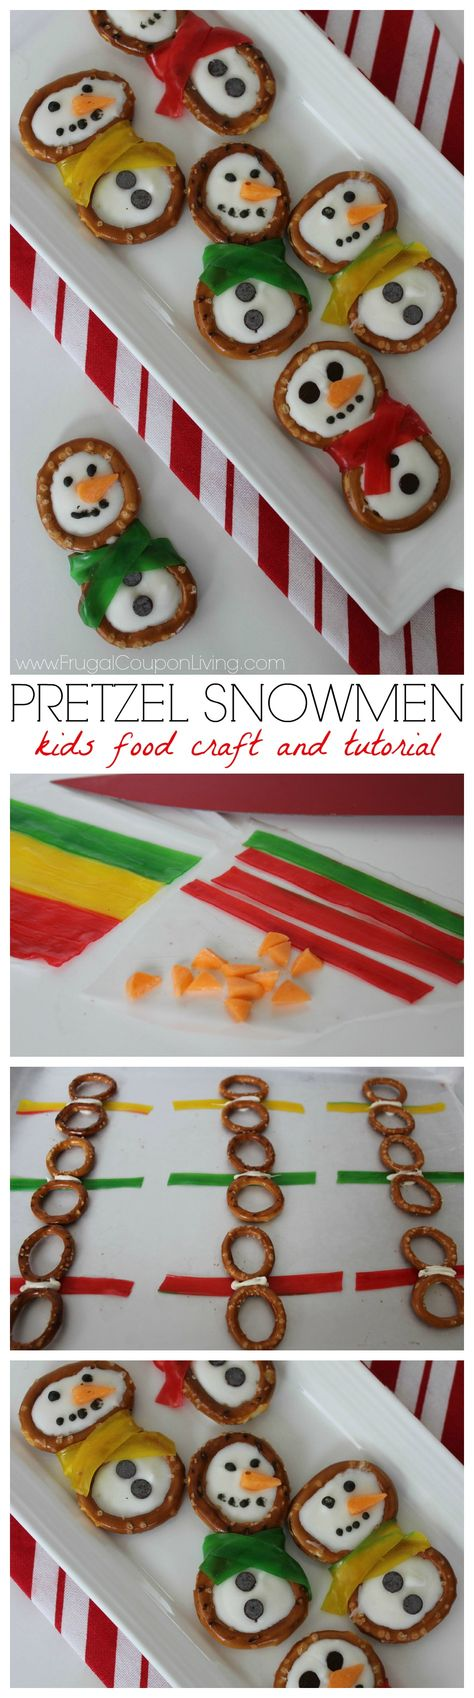 Snowmen Pretzels - Easy Kids Food Craft with pretzels, white chocolate and fruit candy. Details and winter kids party recipe on Frugal Coupon Living.